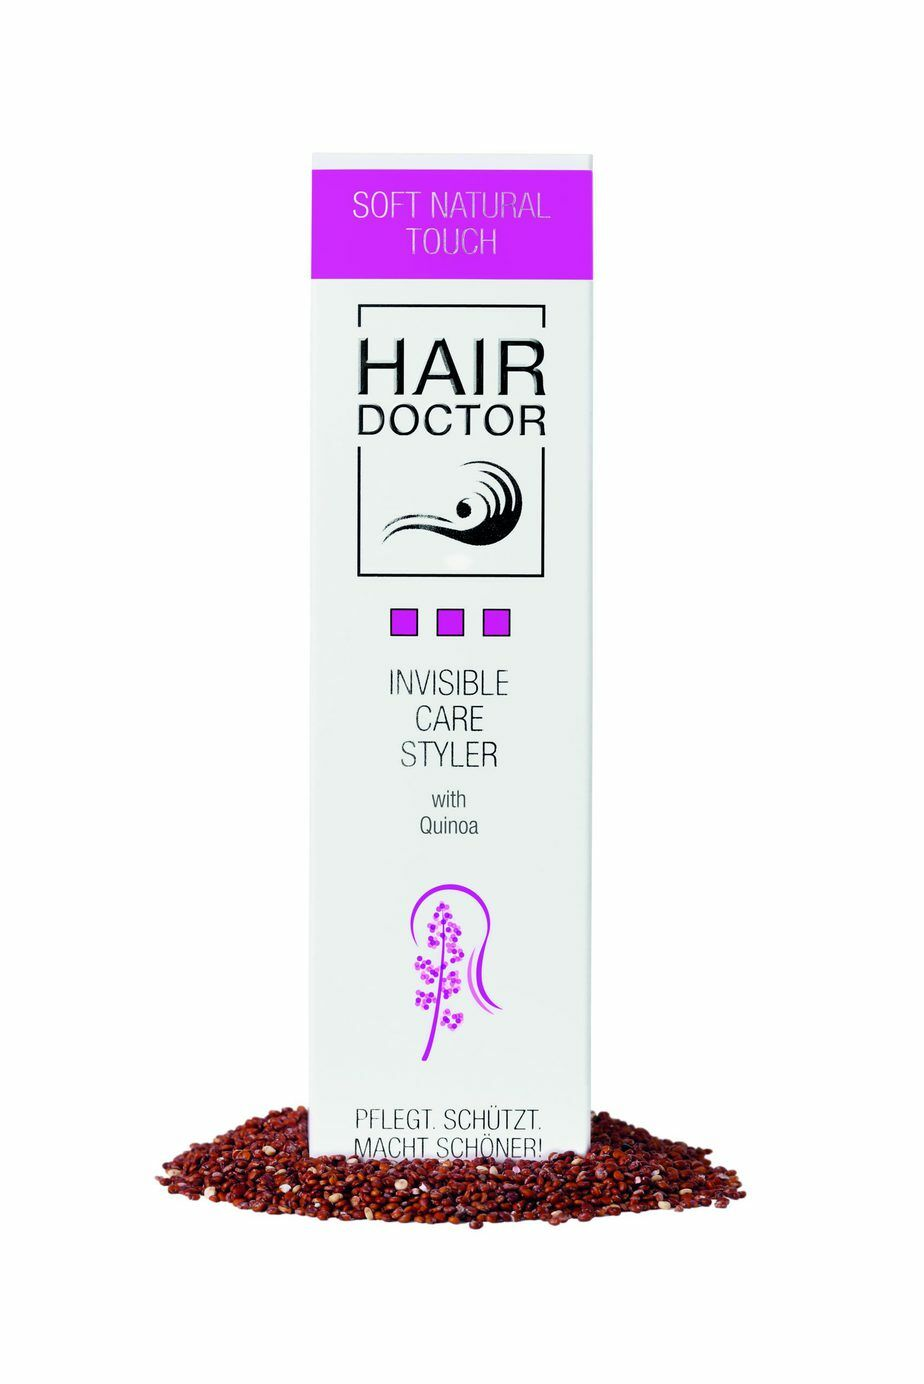 HAIR DOCTOR Invisible Care Styler